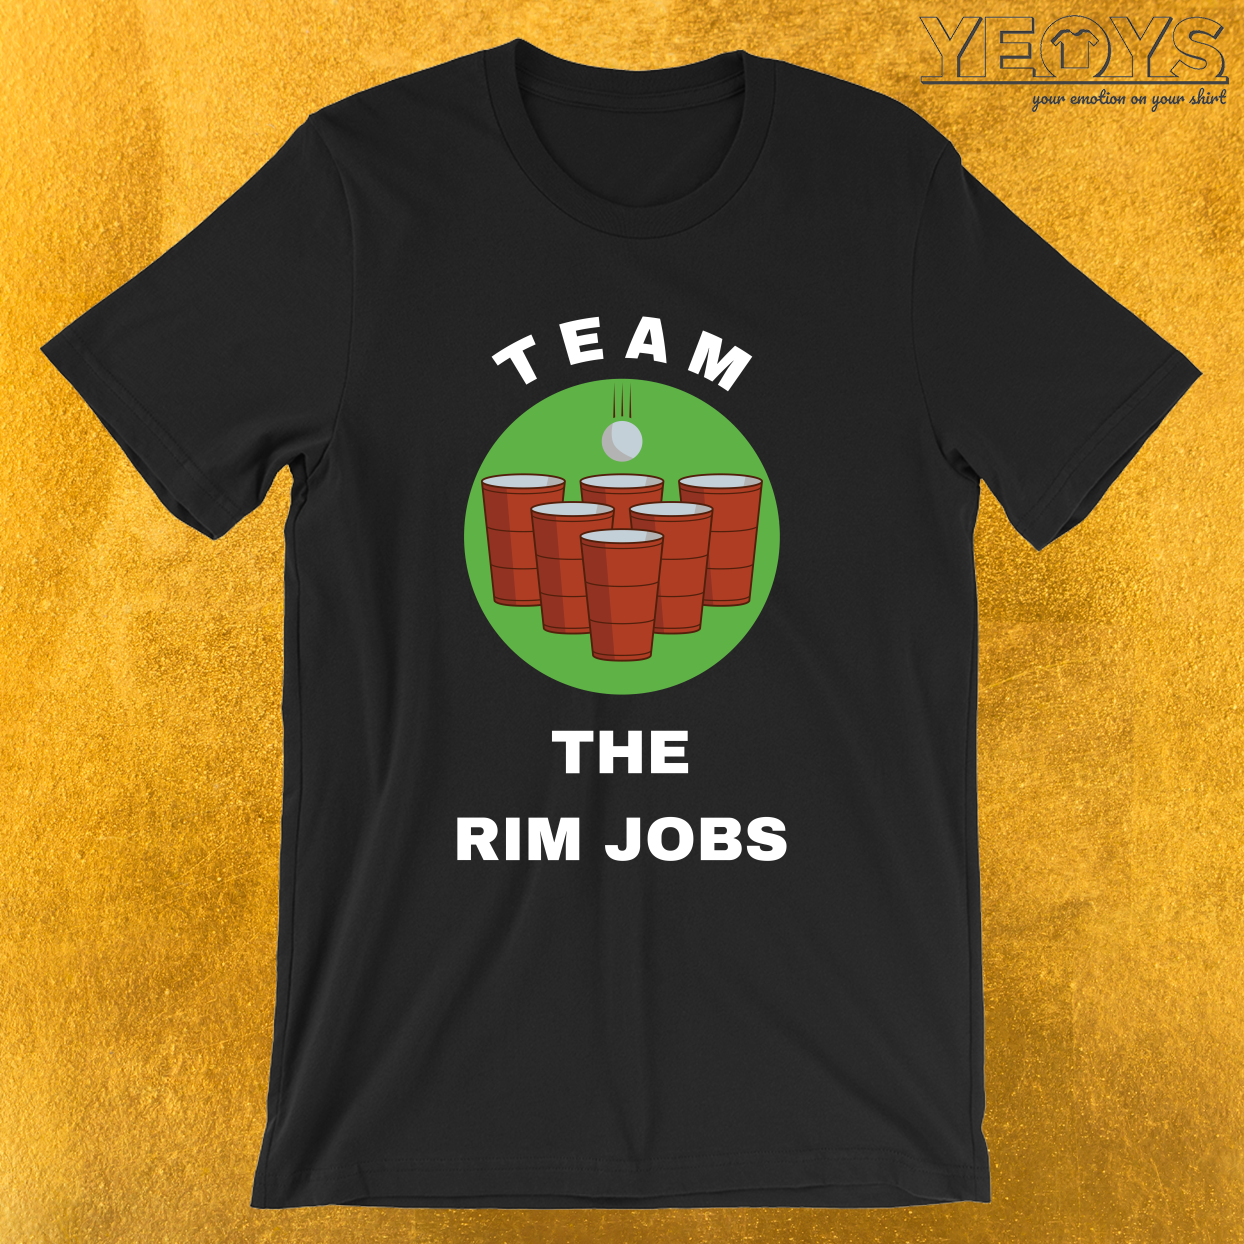 Team The Rim Jobs – USA Beer Pong Team Tee